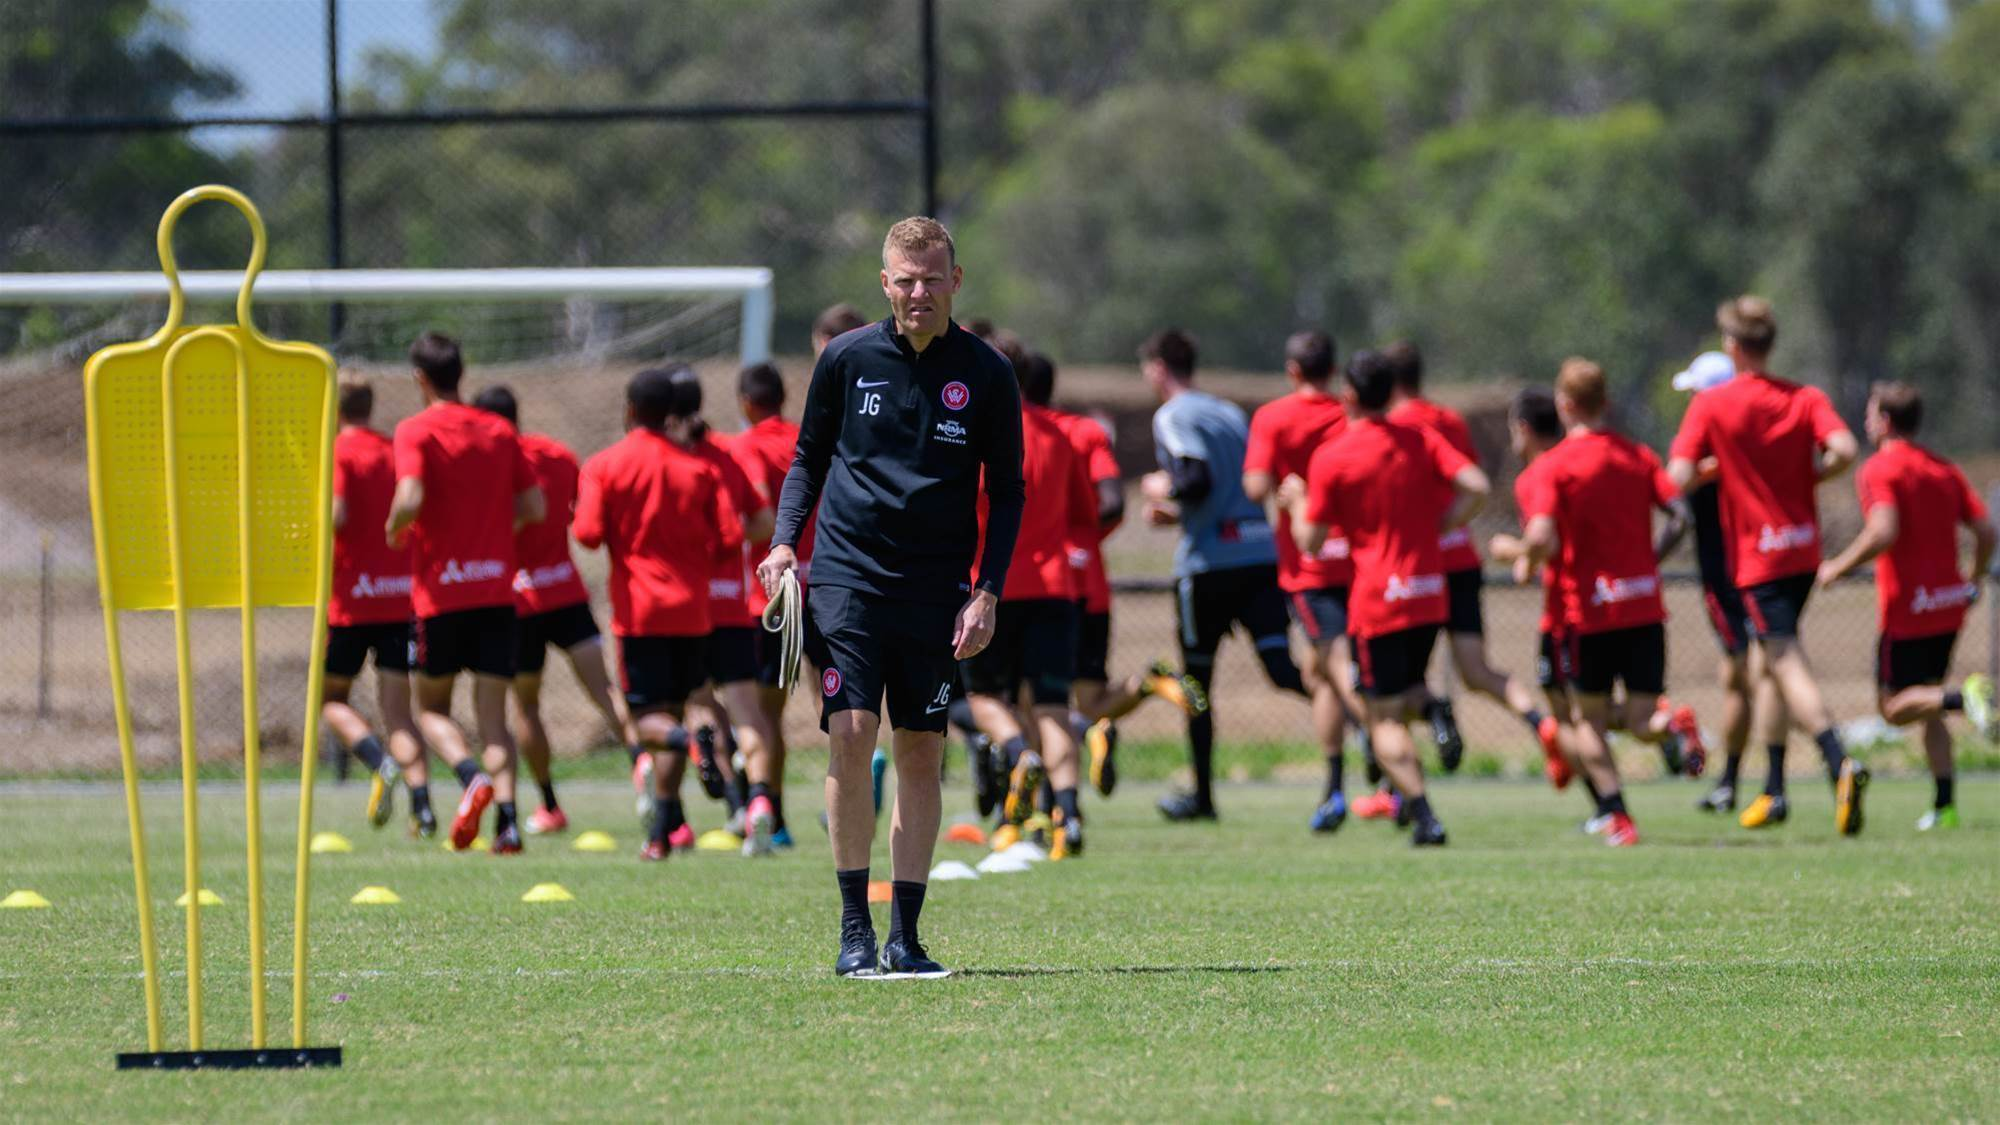 Gombau: I can't promise I can control my passion